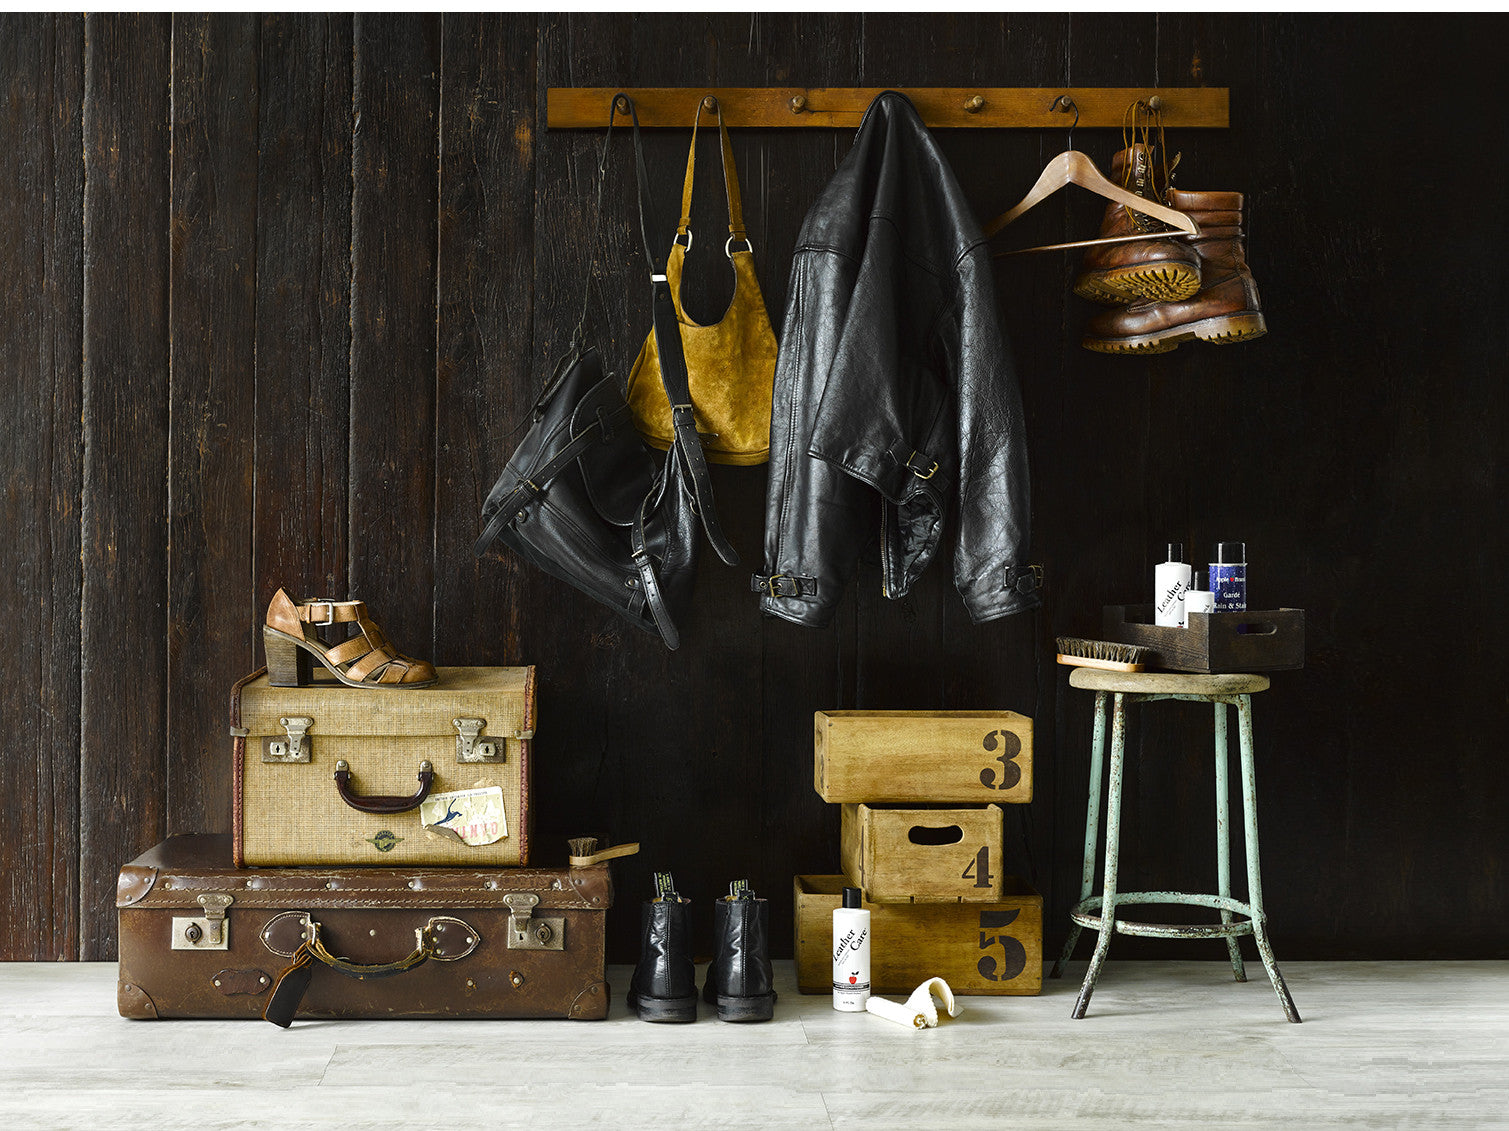 LittleLusso, the one place for all your leather care needs